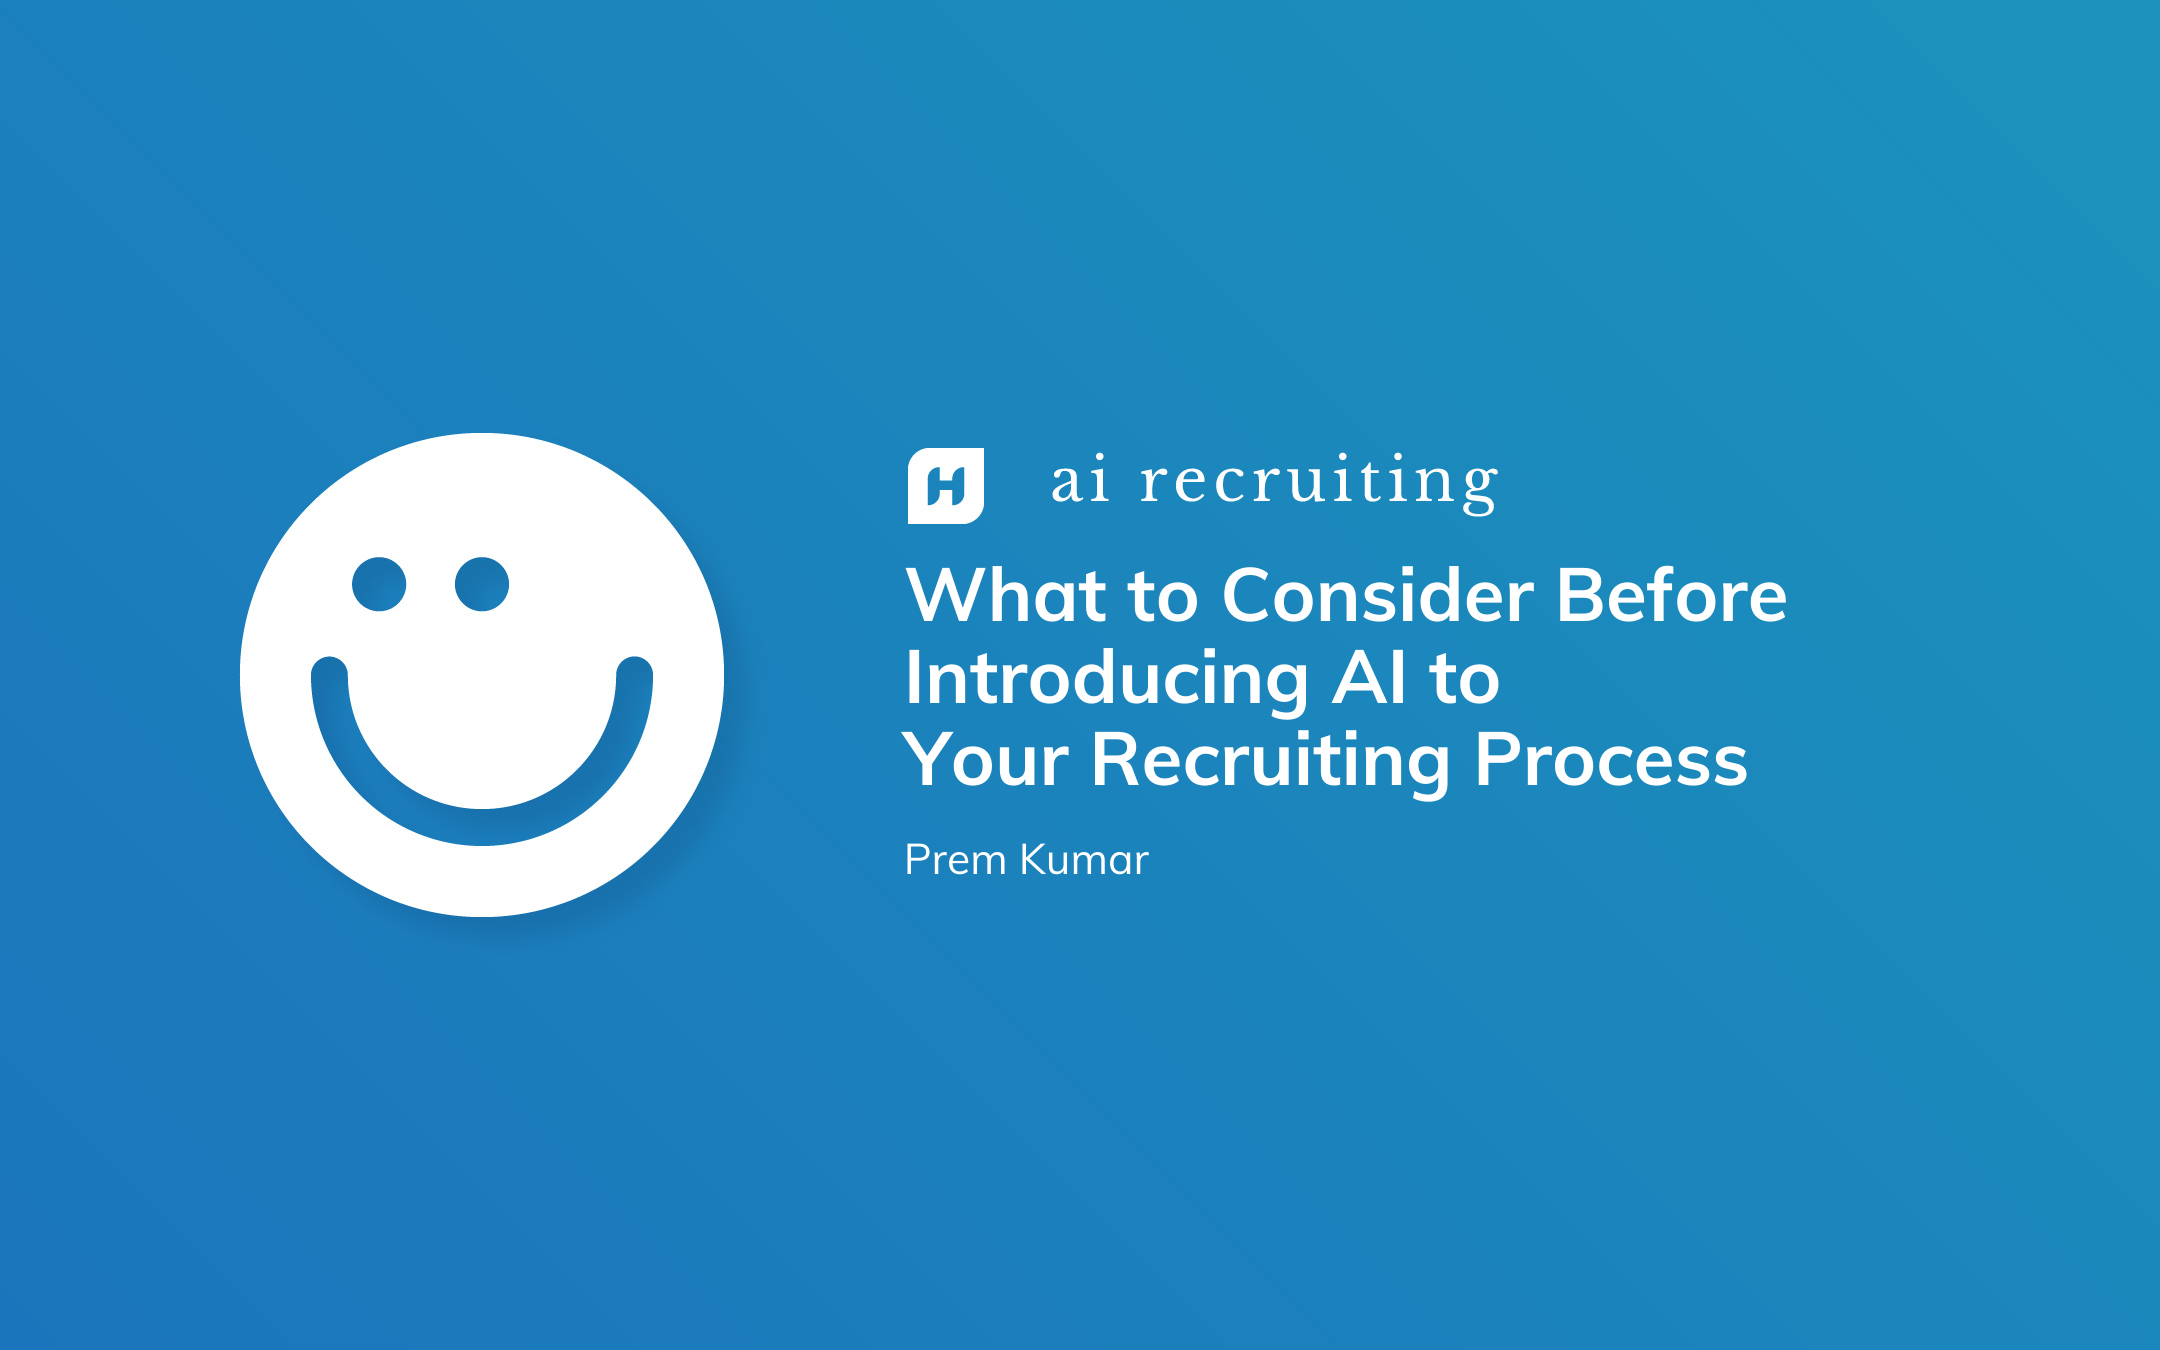 What to Consider Before Introducing AI into Your Recruiting Process